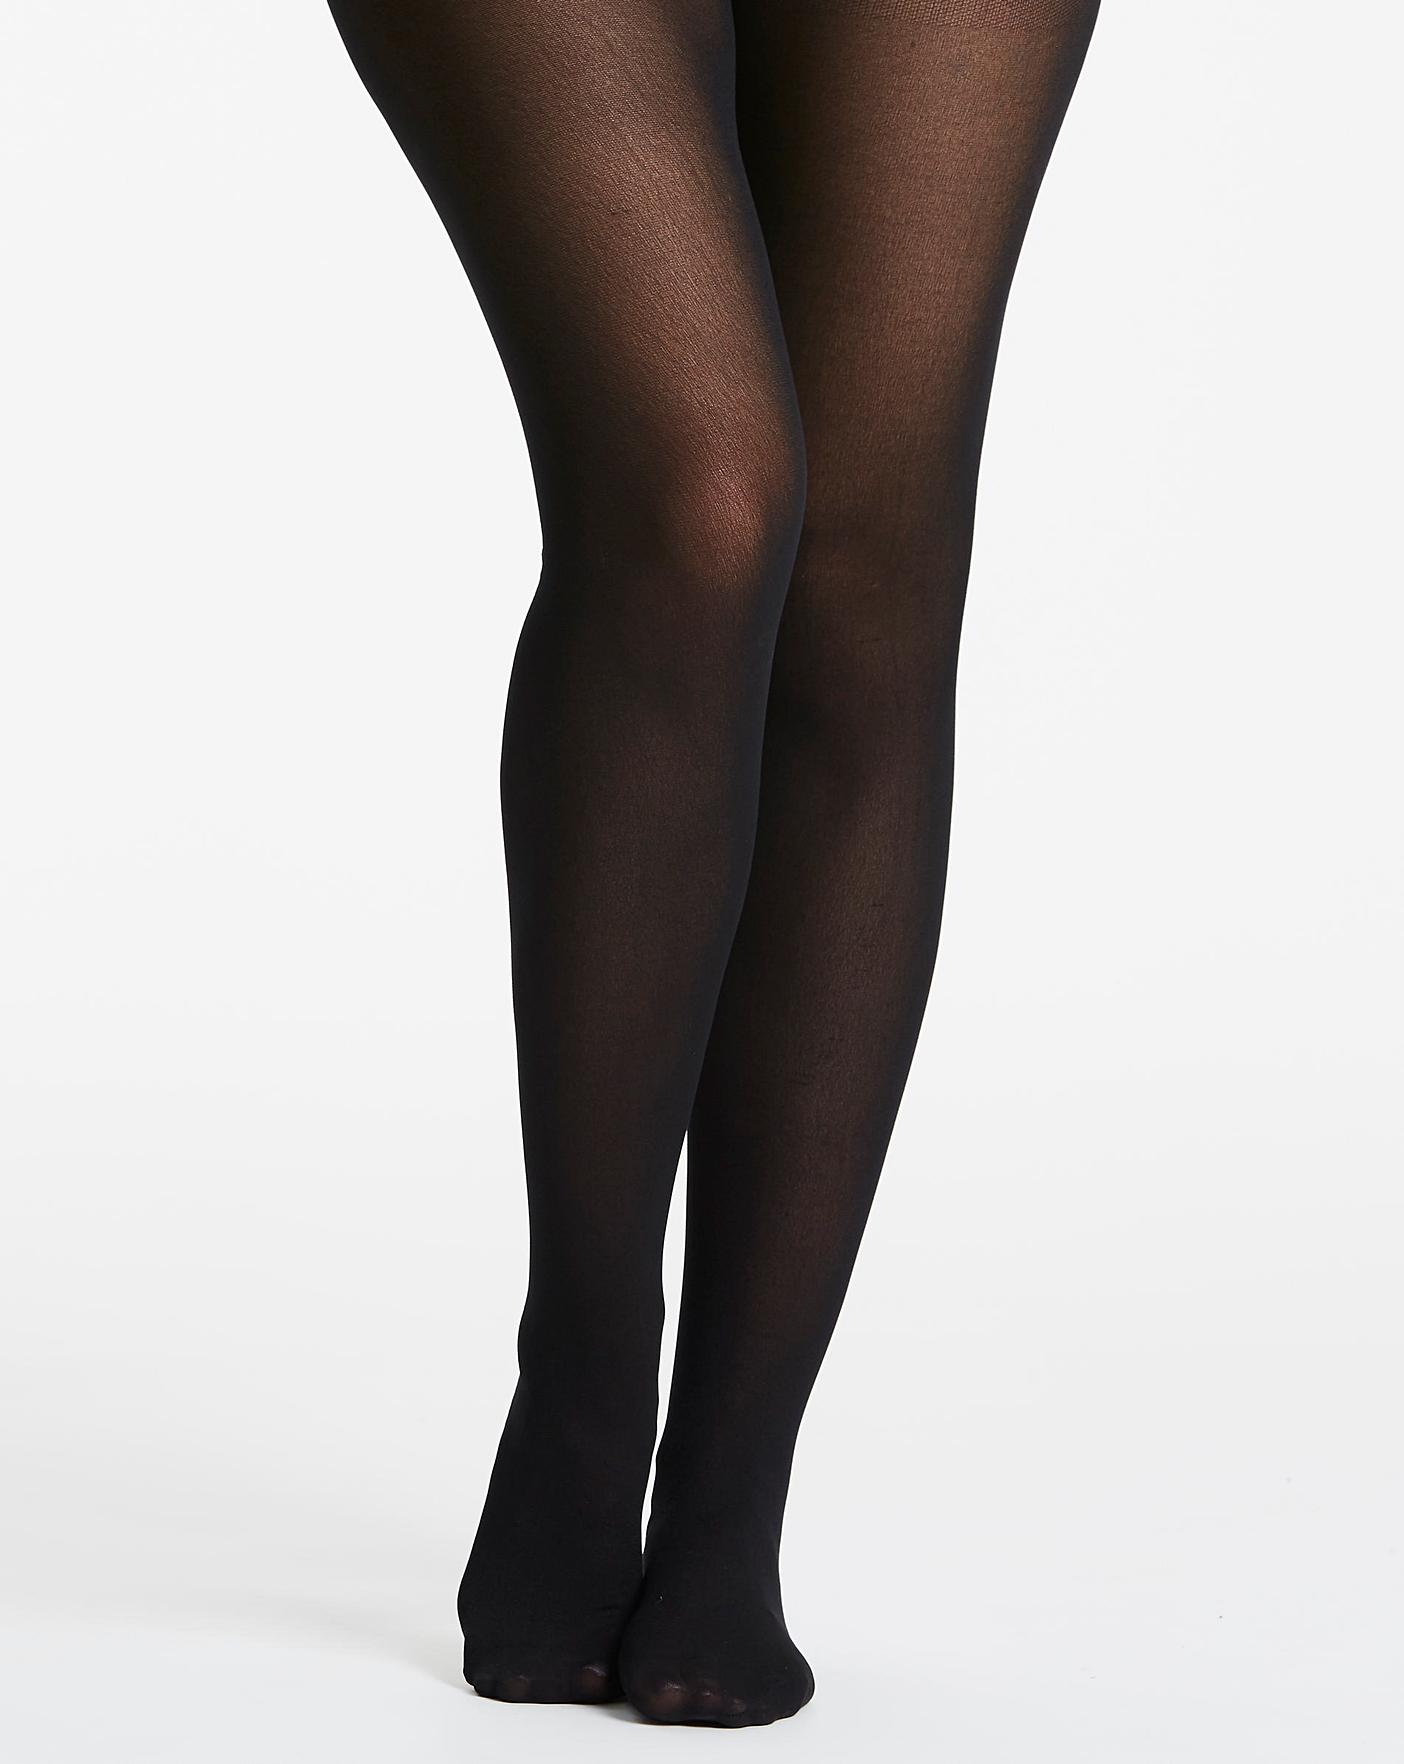 ee2794ba72f 2 Pack 60 Denier Opaque Tights